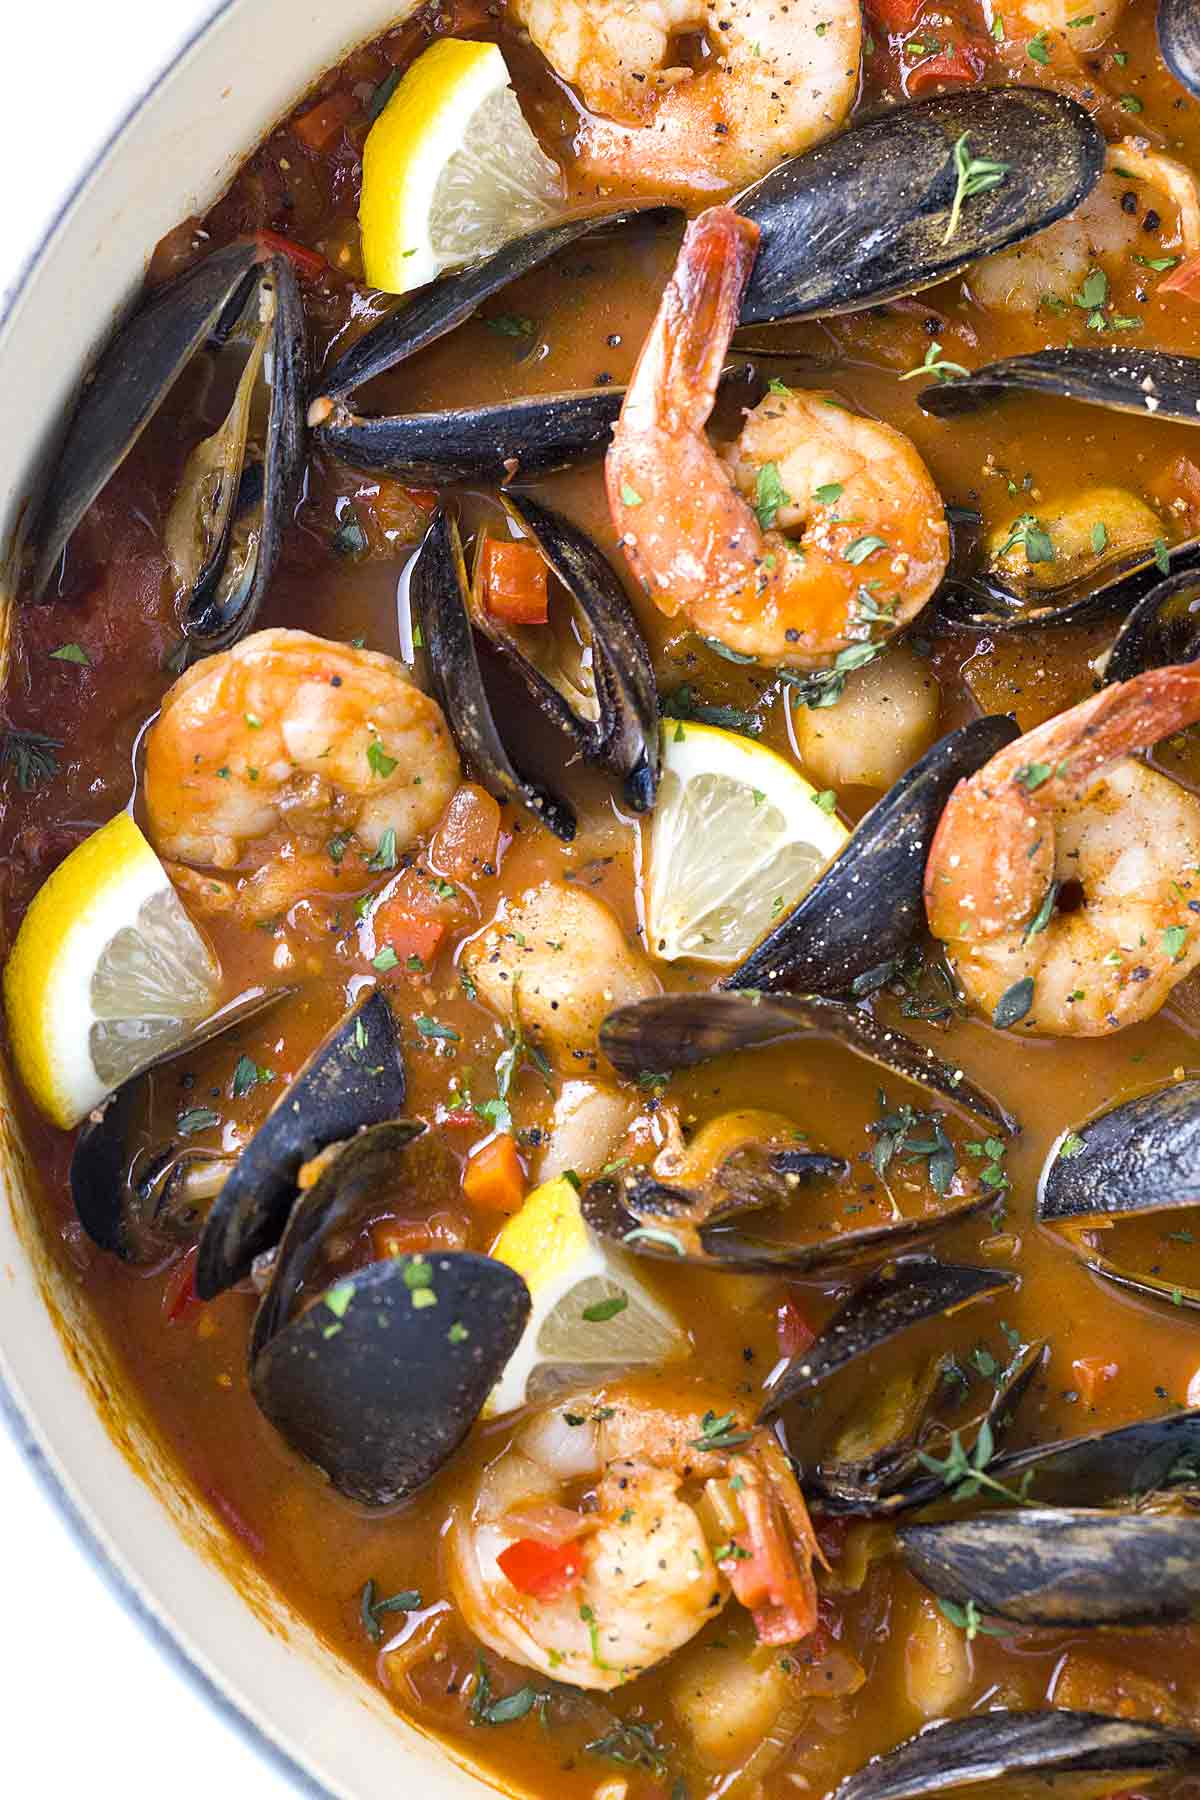 San Francisco Style Seafood Cioppino - A pot of fresh mussels, shrimp, and scallops simmered in a savory tomato and red wine broth. Served with homemade crunchy croutons! | jessicagavin.com